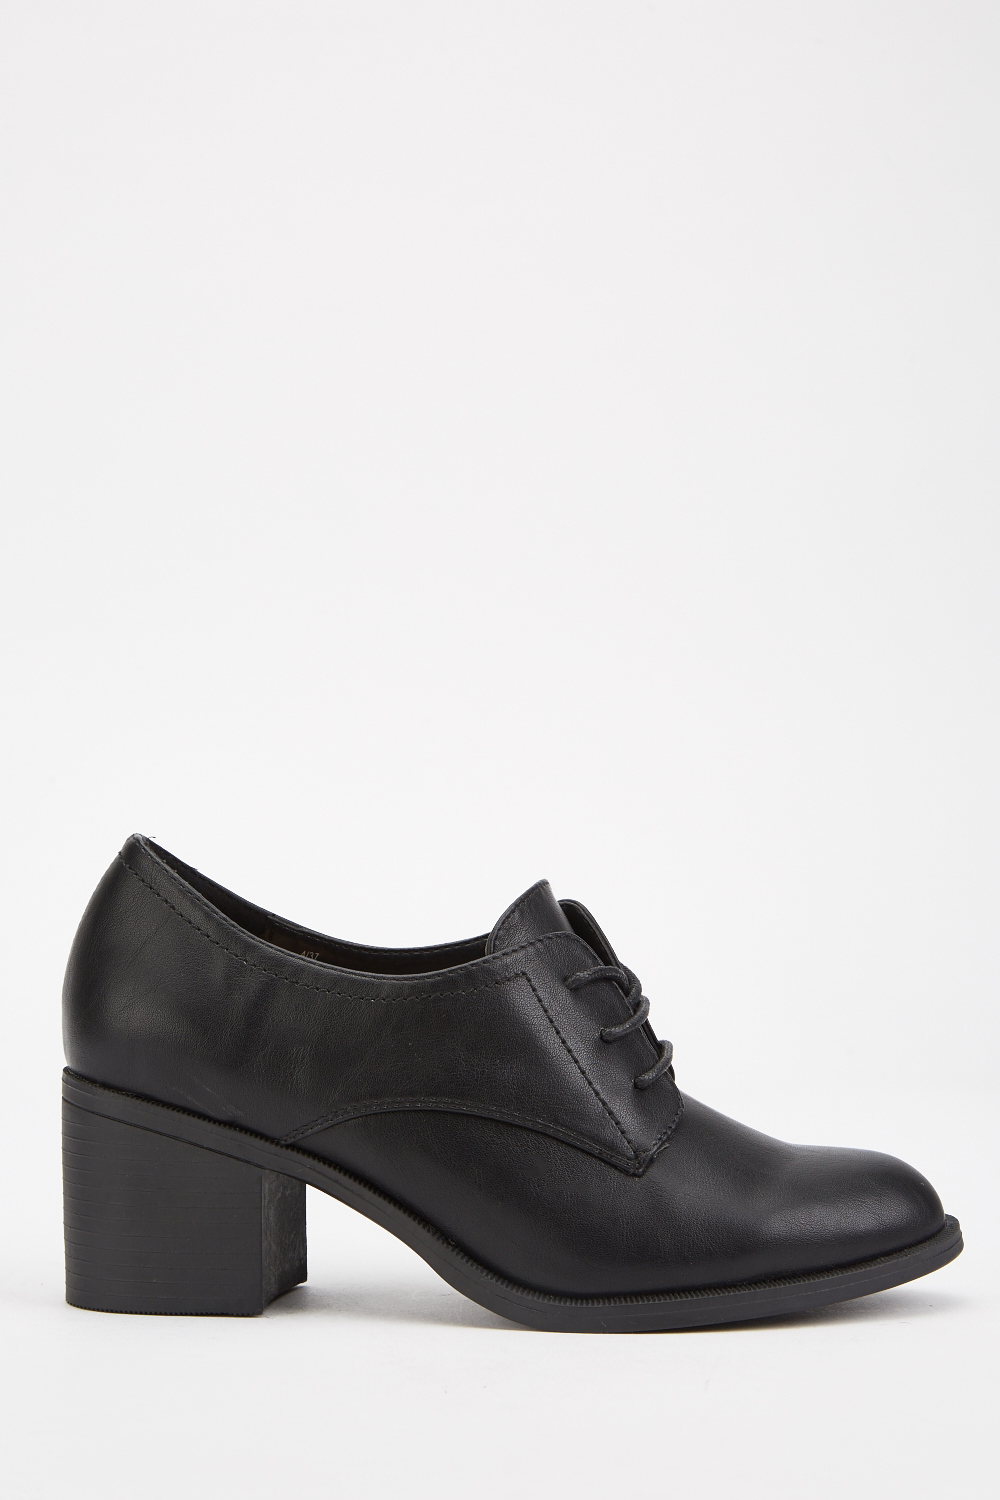 white heeled oxford shoes